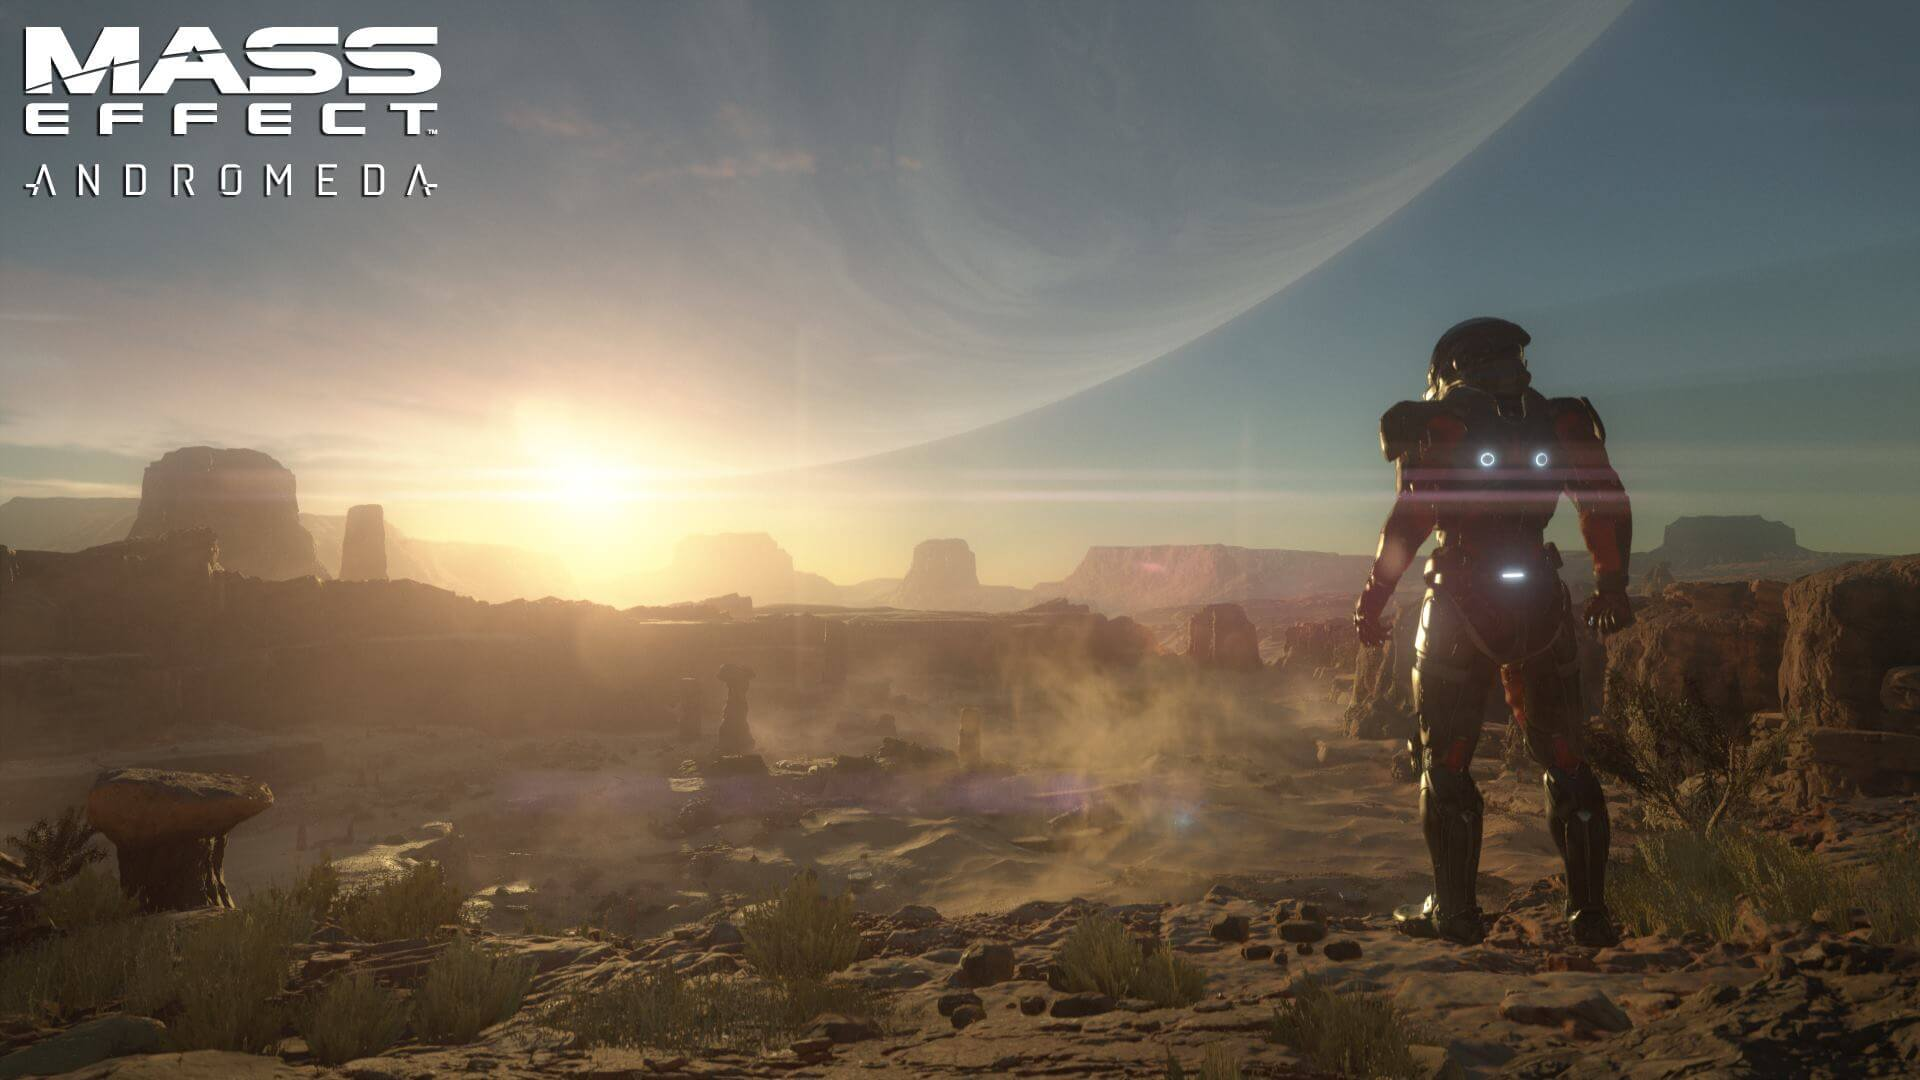 BlurryPhoenix Reflects: Mass Effect Andromeda